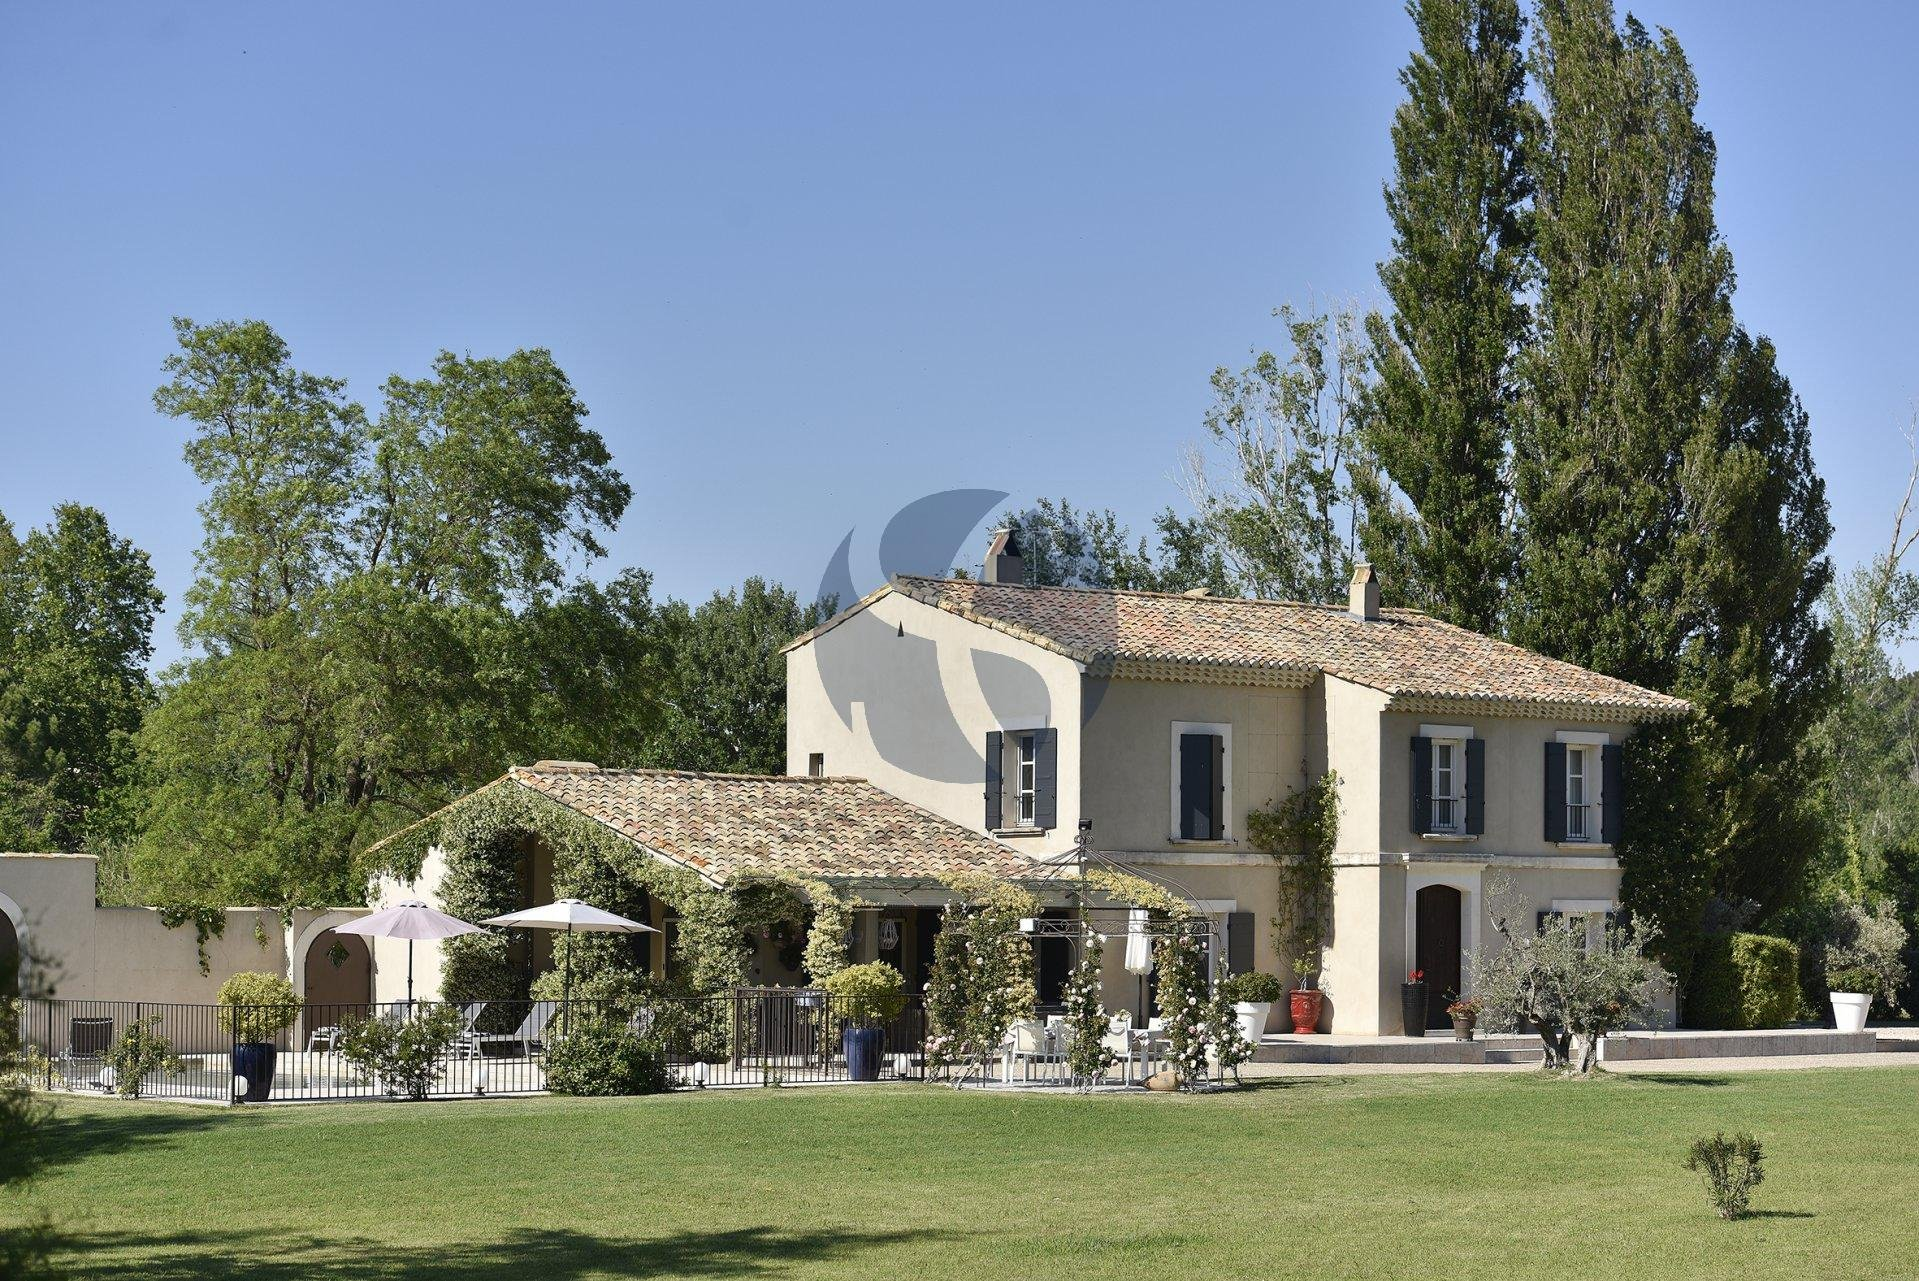 Contemporary villa in Maussane les Alpilles